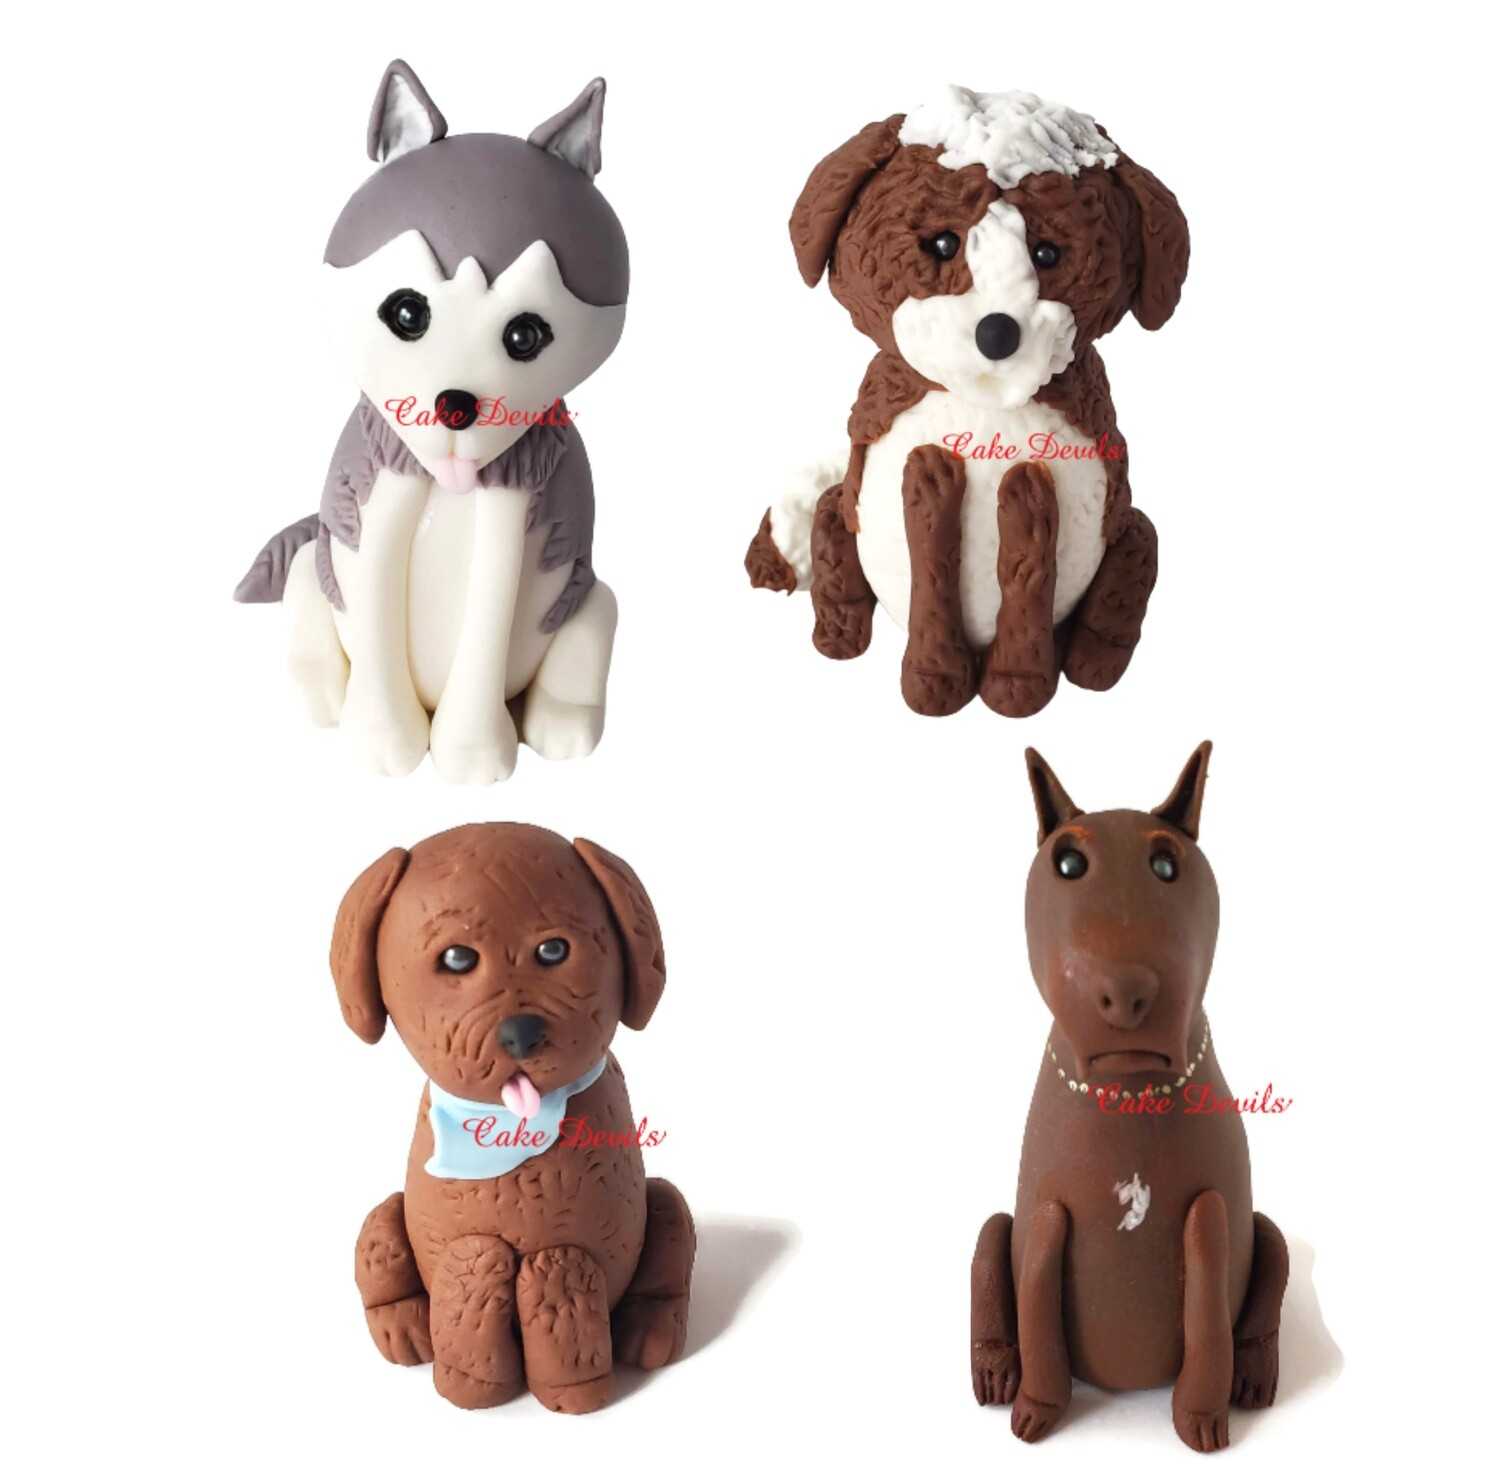 Handmade Fondant Dog Cake Topper - Have one made to look like your dog!